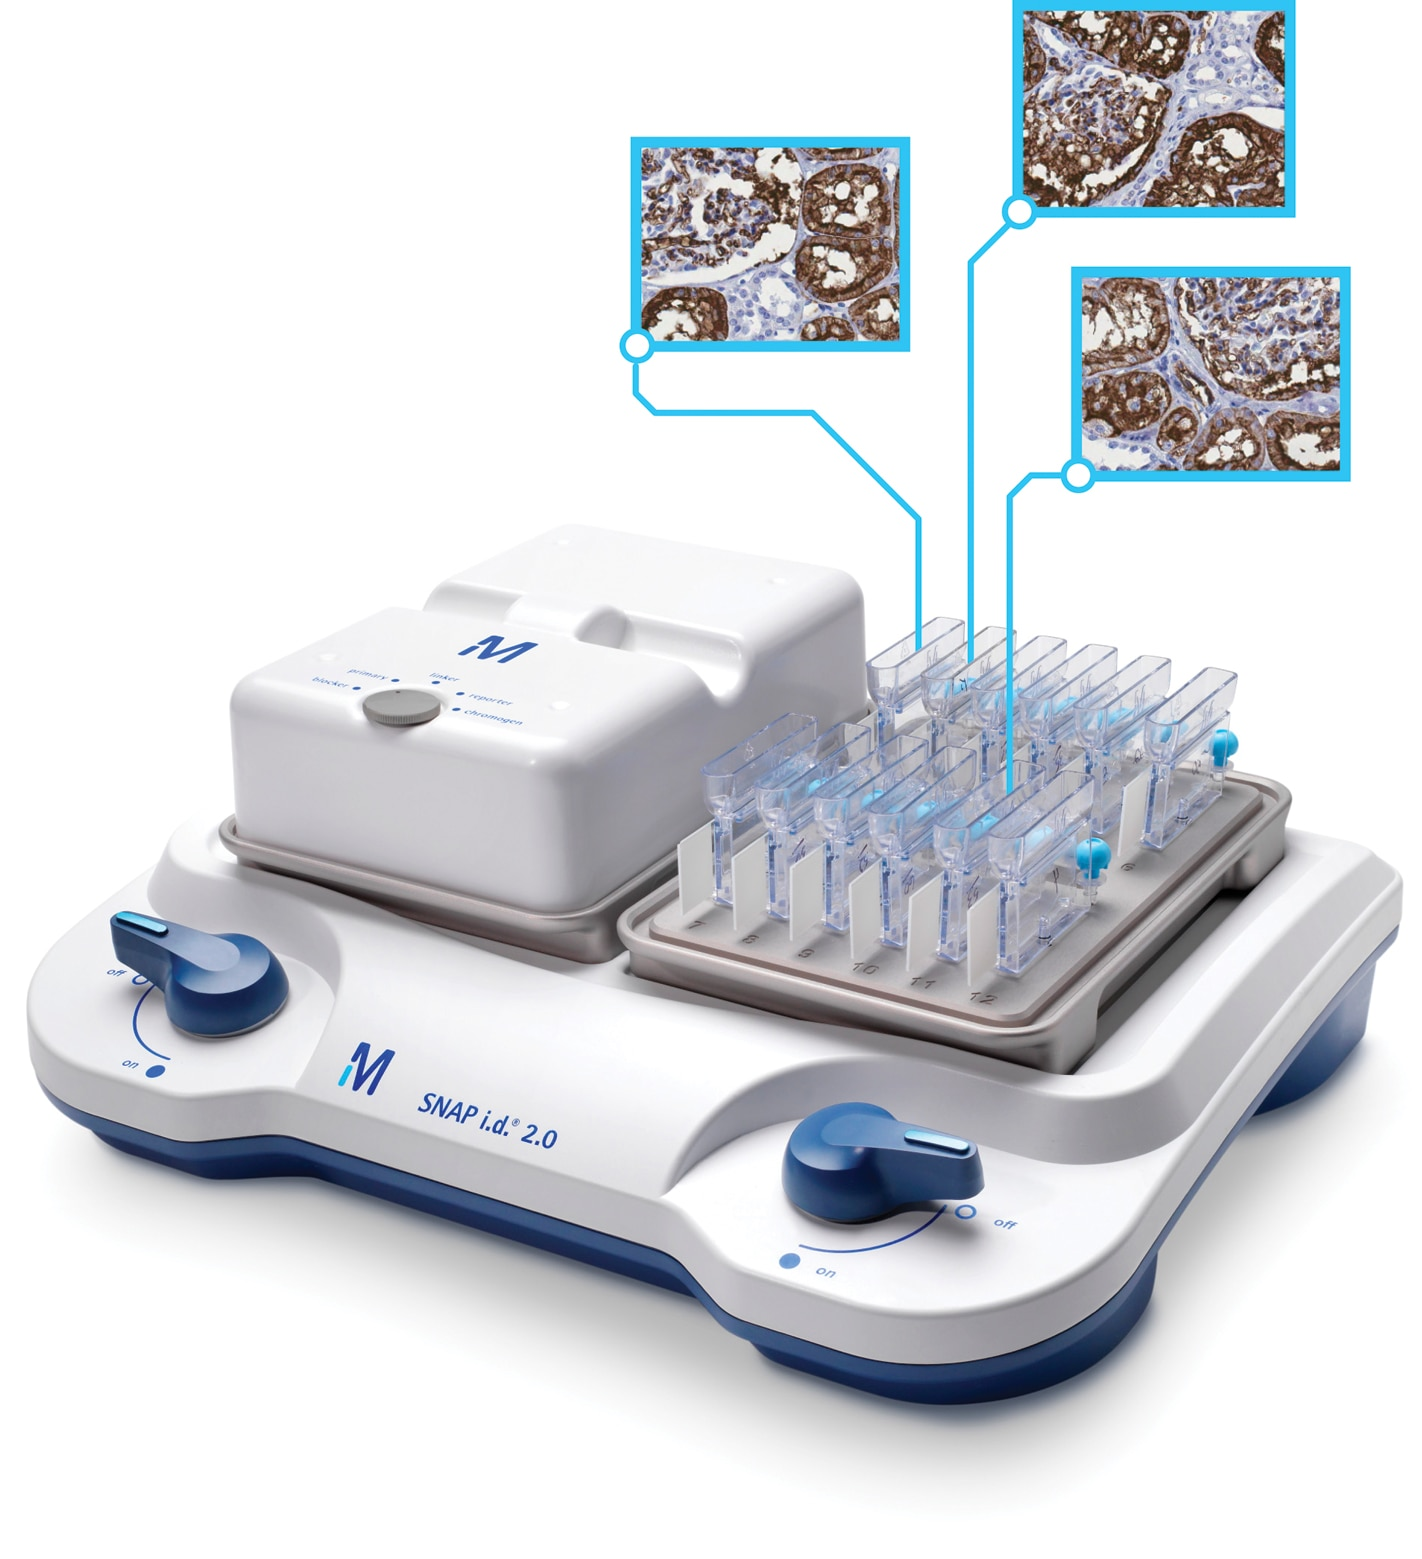 SNAP i.d.® 2.0 protein detection system for immunohistochemistry enables simultaneous, vacuum-driven processing of multiple IHC slides.